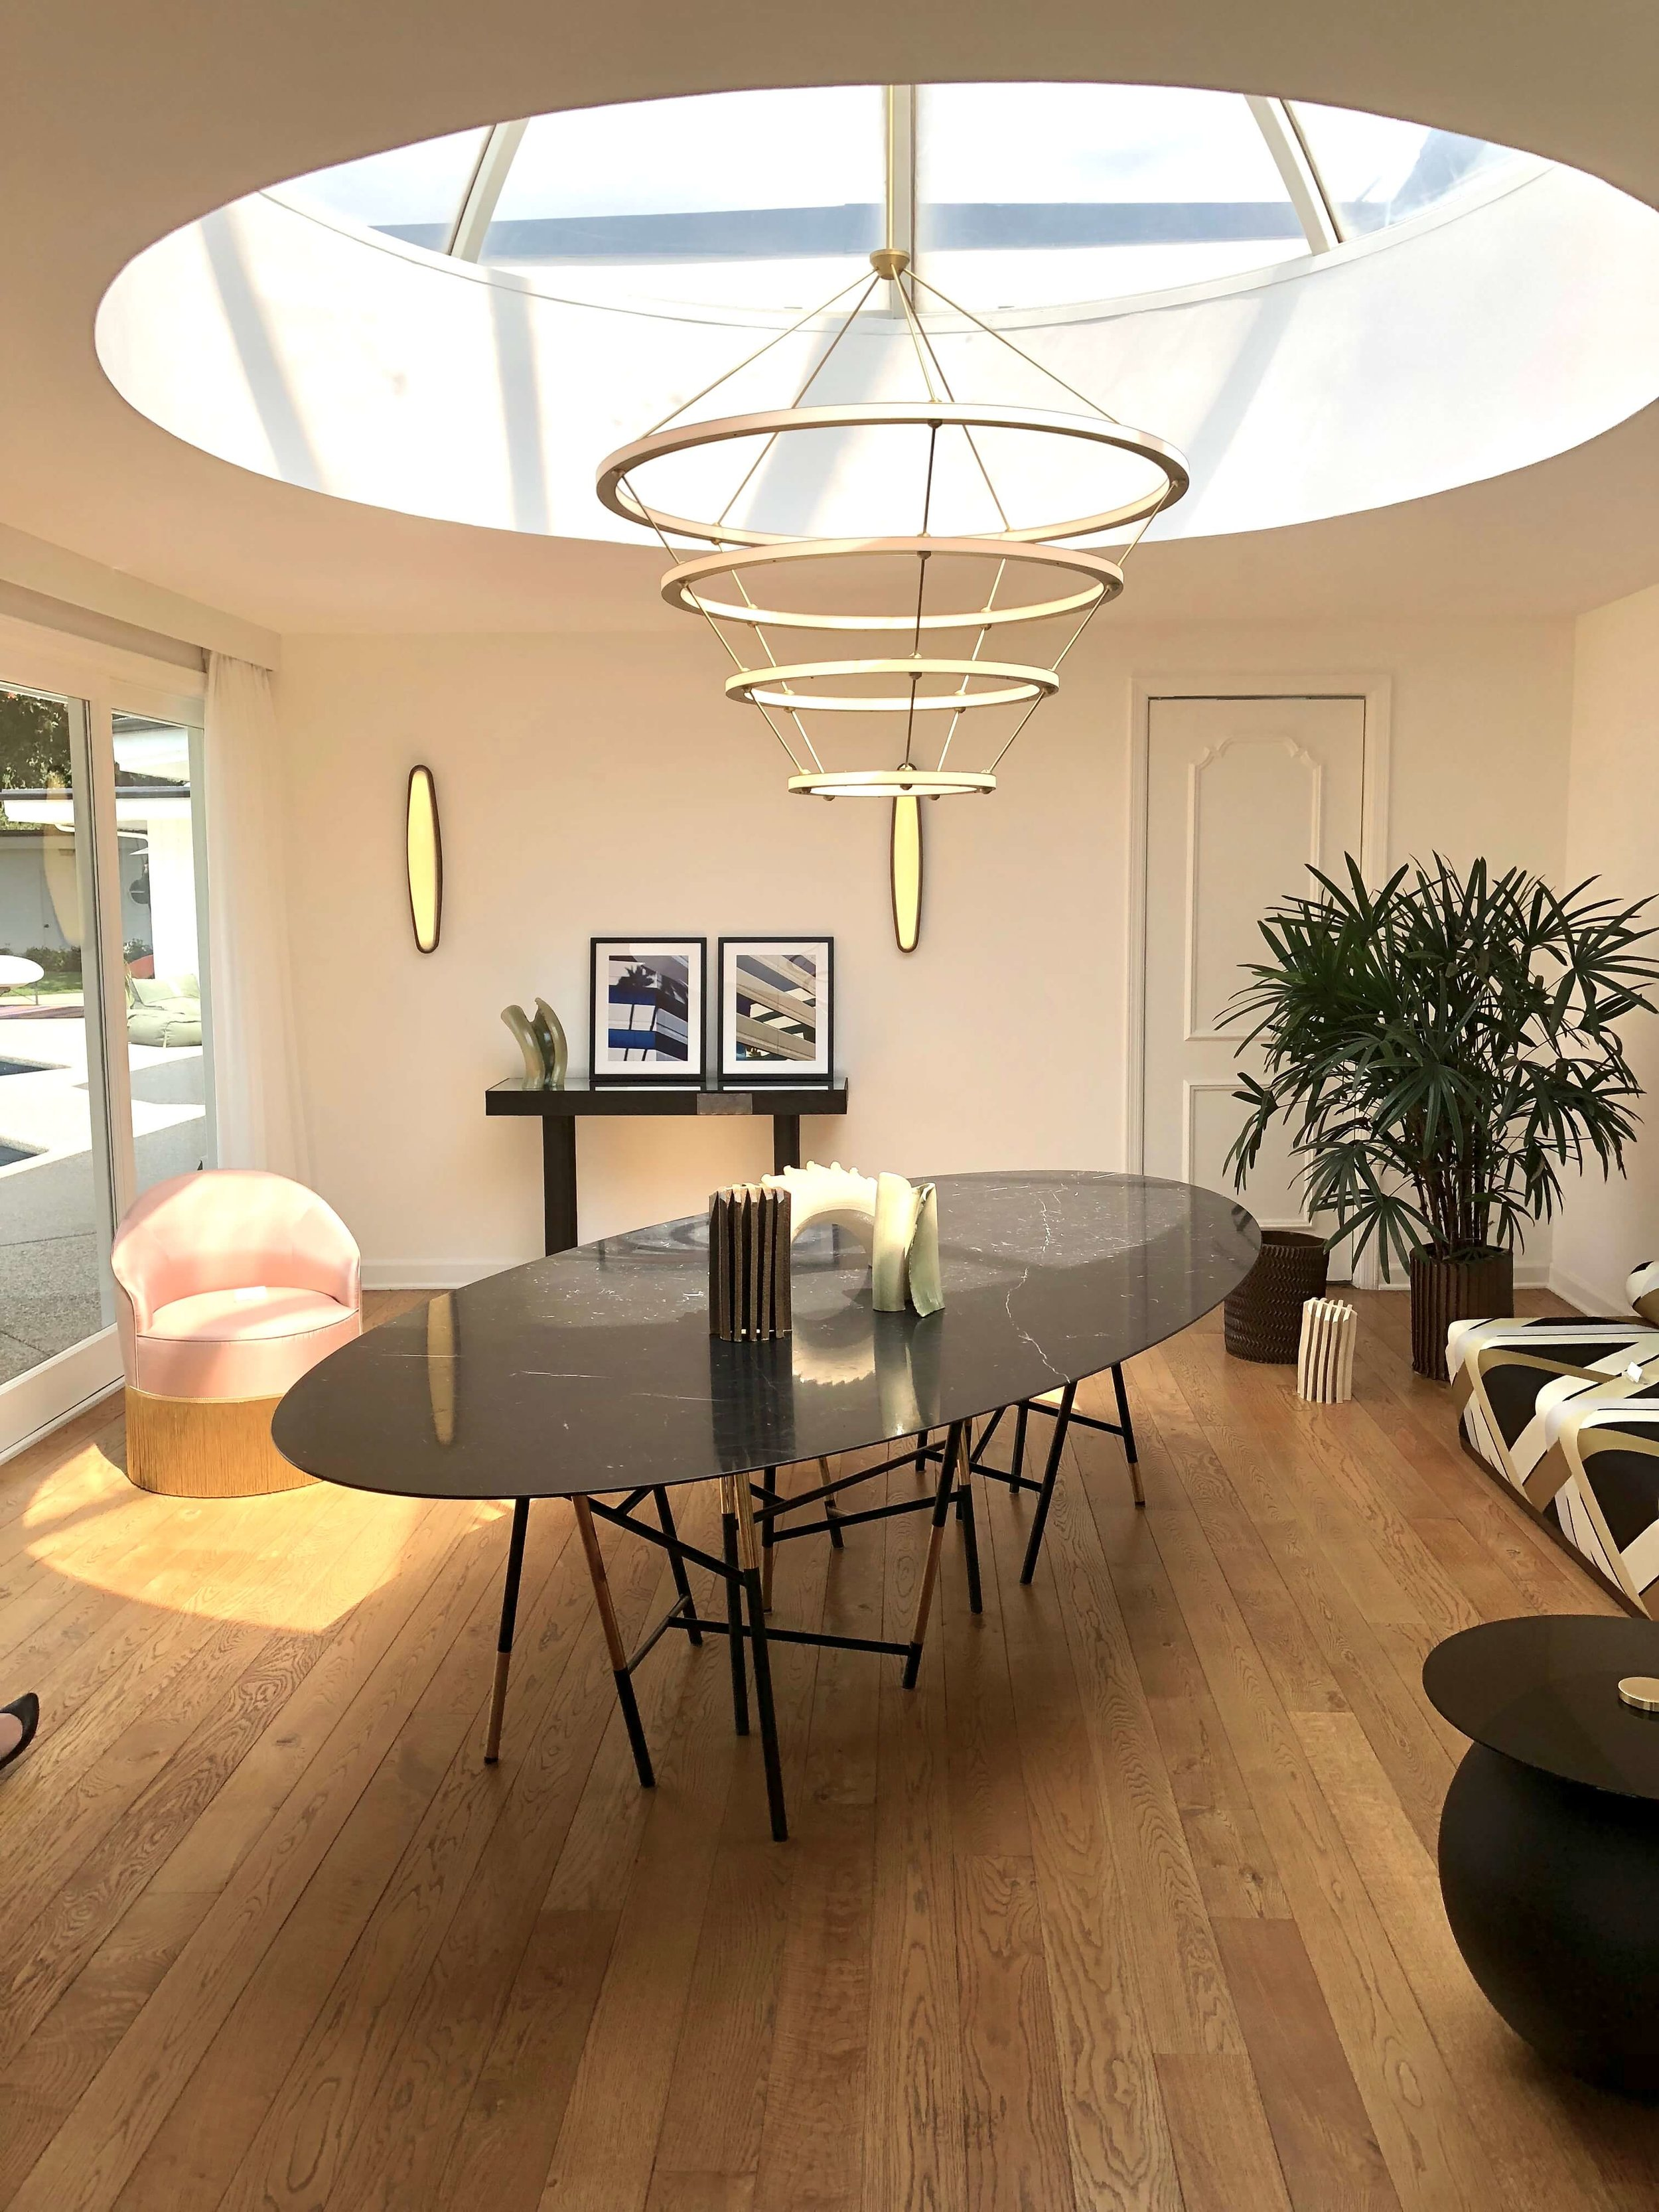 Oculus skylight with lighting designed by Paul Loebach in dining room of Casa Perfect, Beverly Hills, CA #oculus #skylight